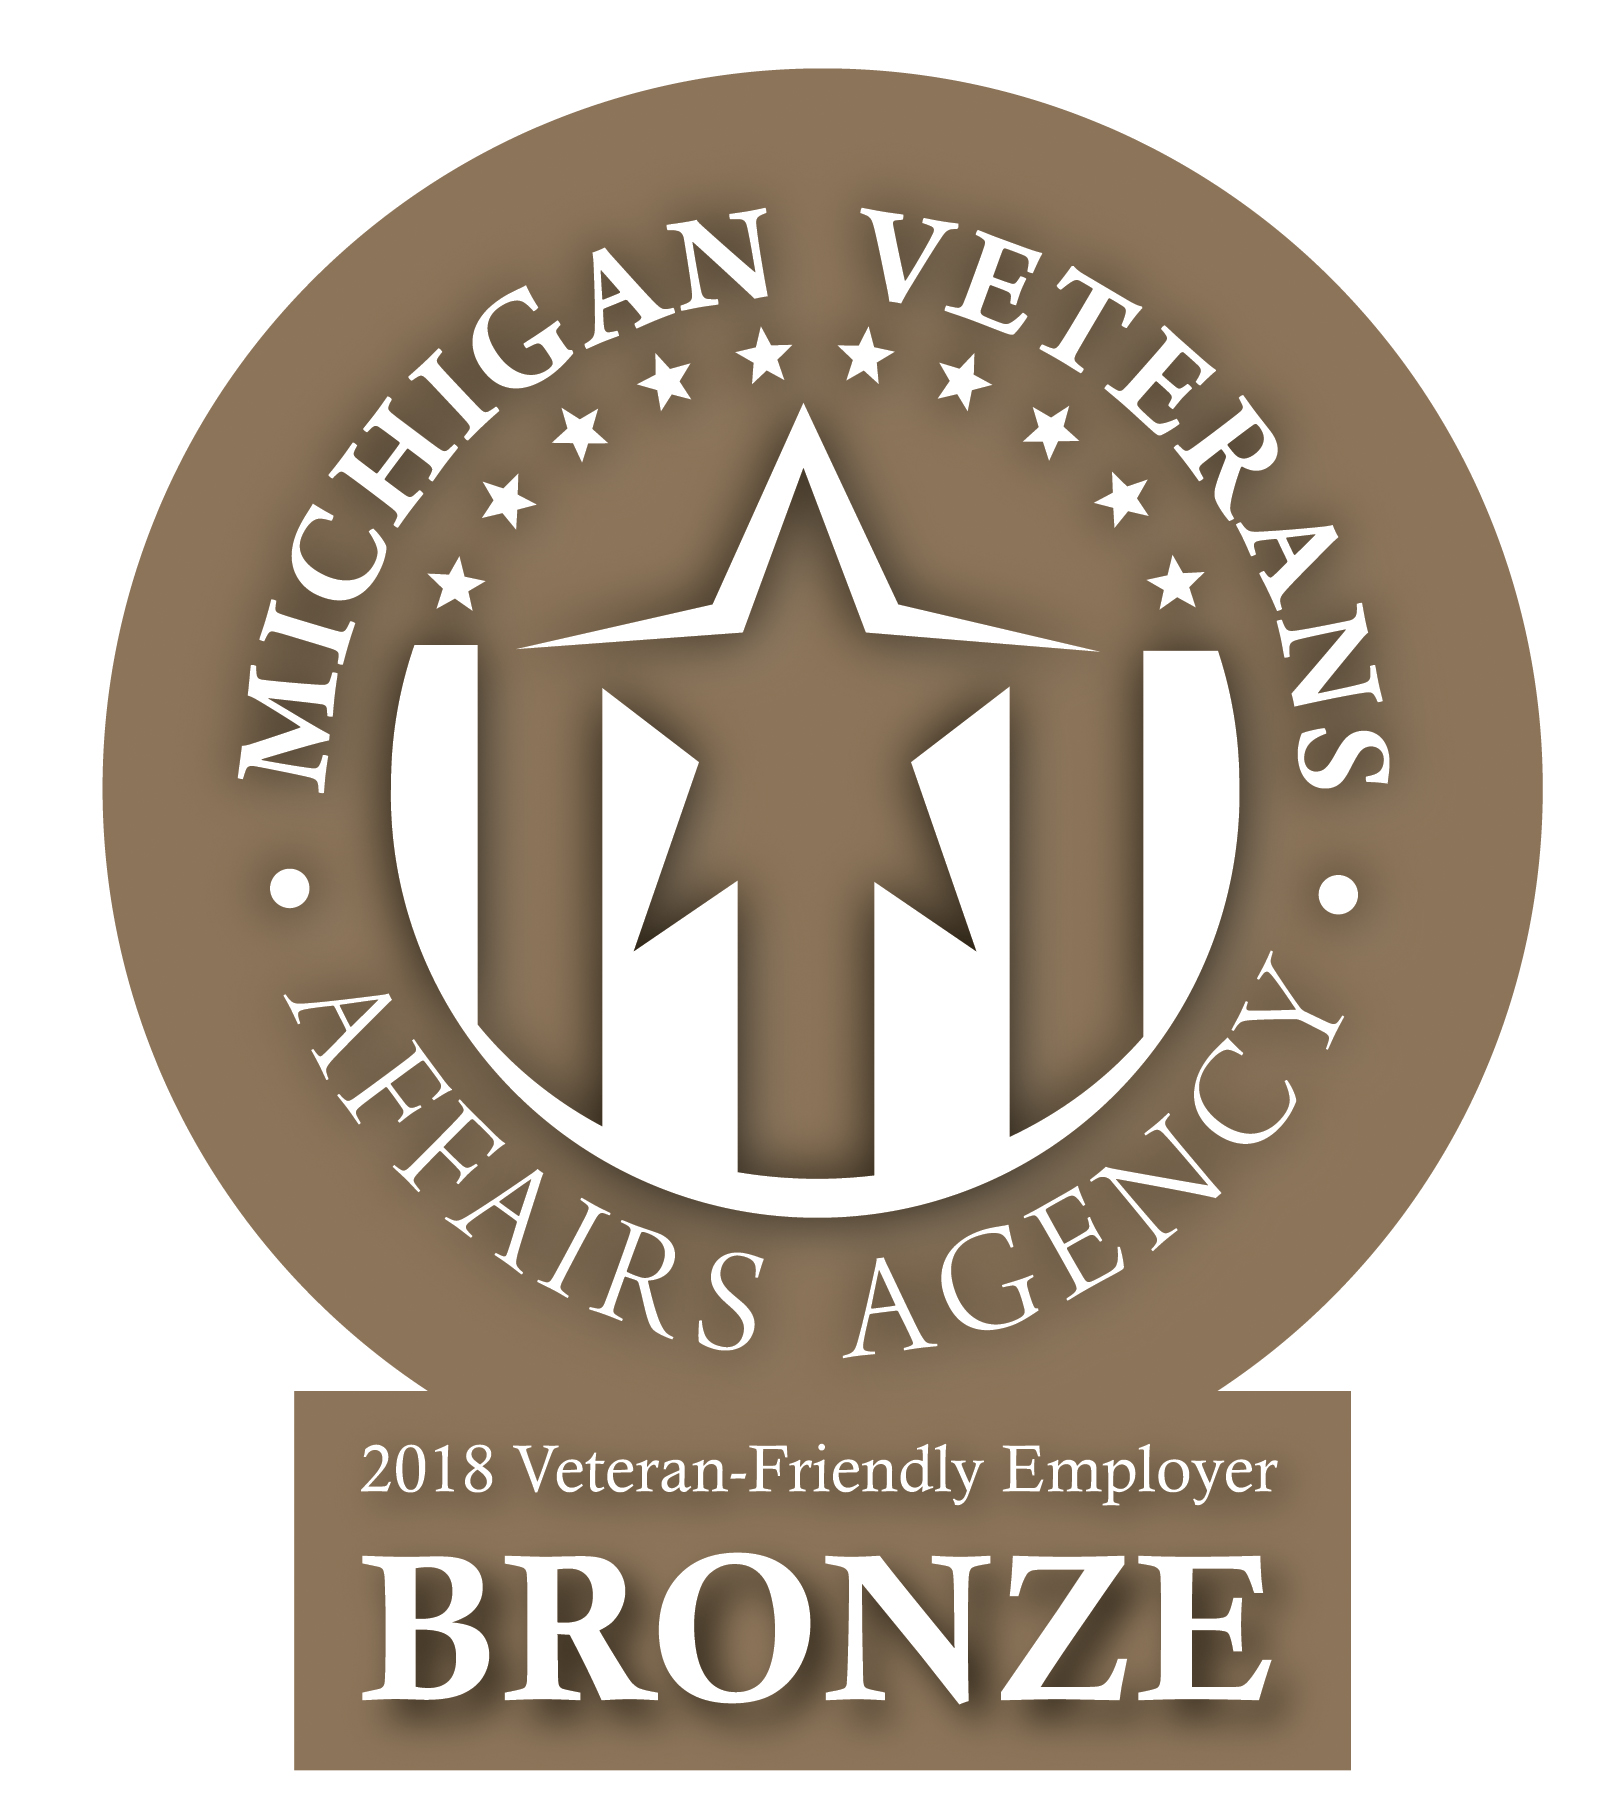 Michigan Veteran Affairs Agency